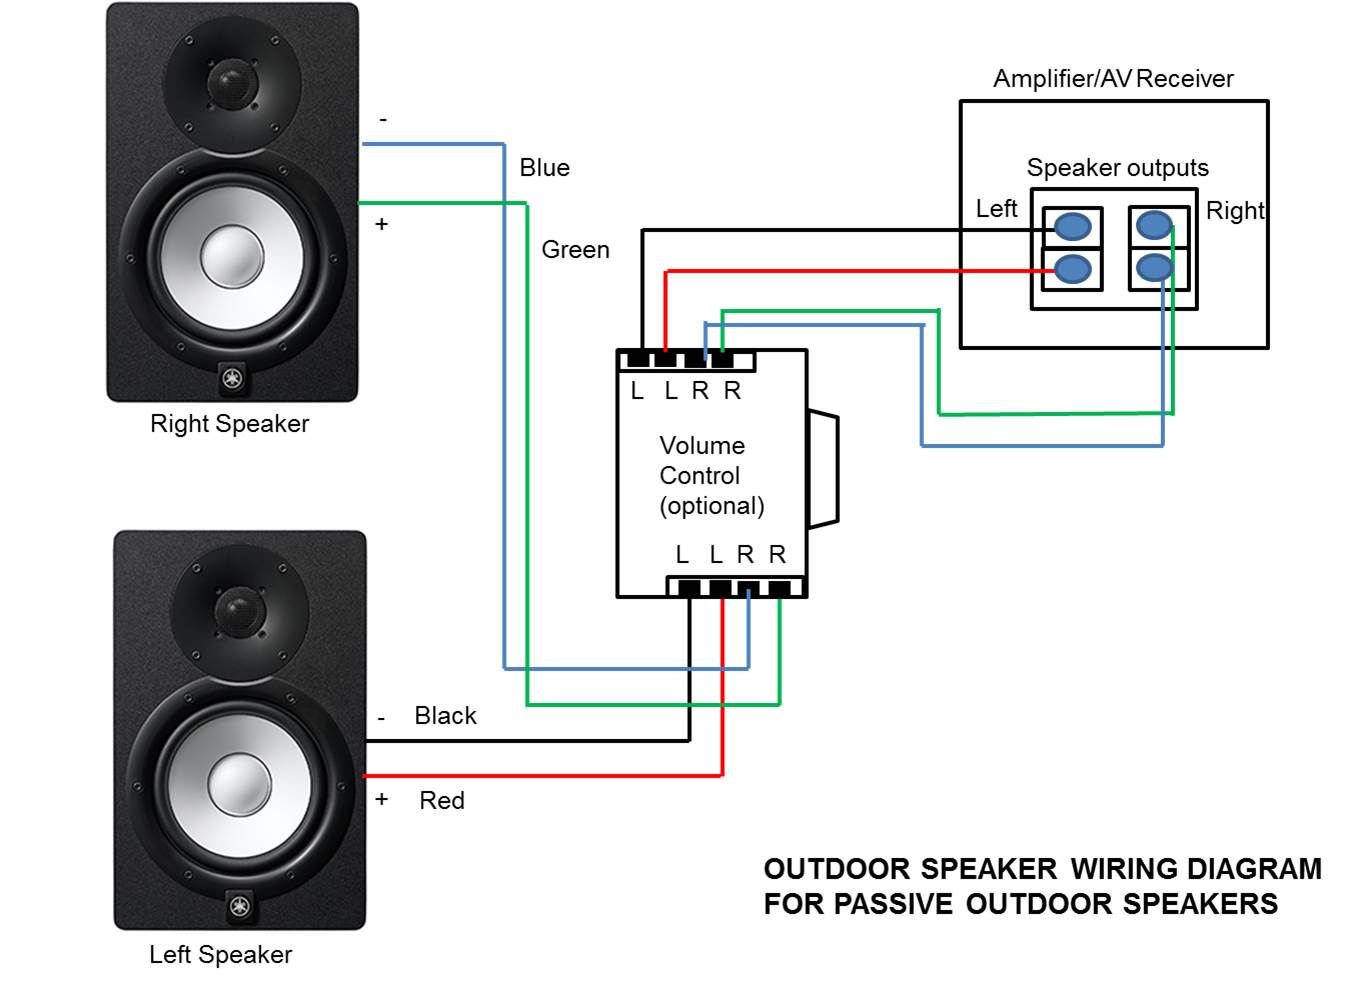 Outdoor Speaker Wiring Diagram best outdoor speakers in 2017 for gardens, patios and backyards outdoor speaker wiring diagram at bakdesigns.co